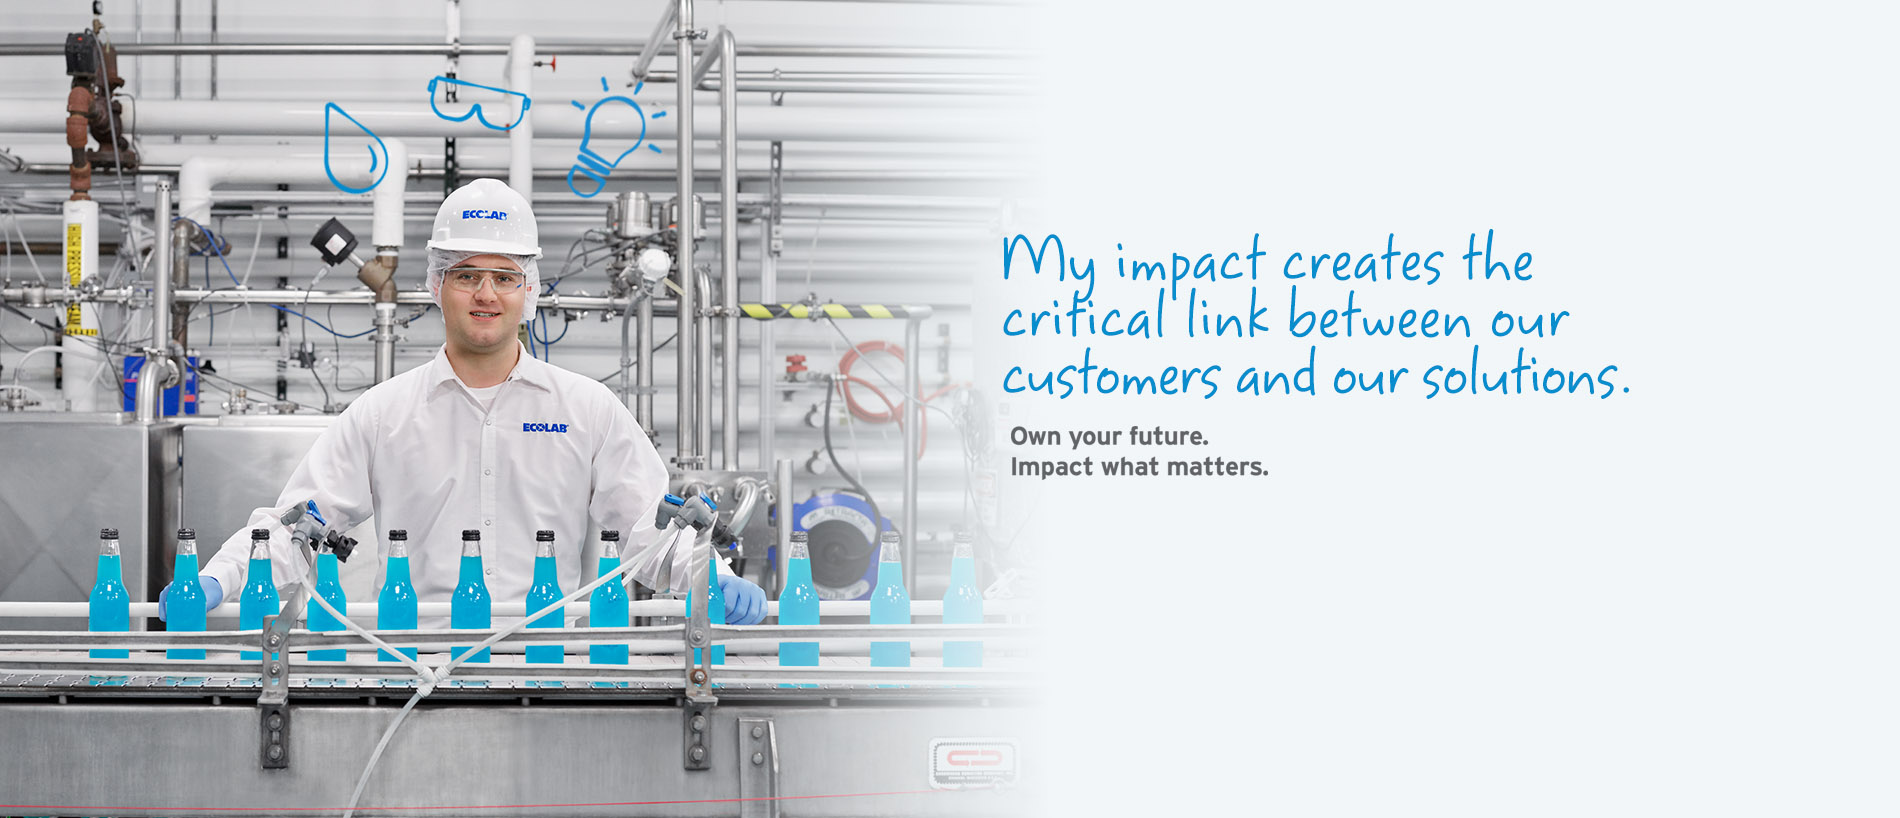 My impact creates the critical link between our customers and our solutions. Own your future. Impact what matters.